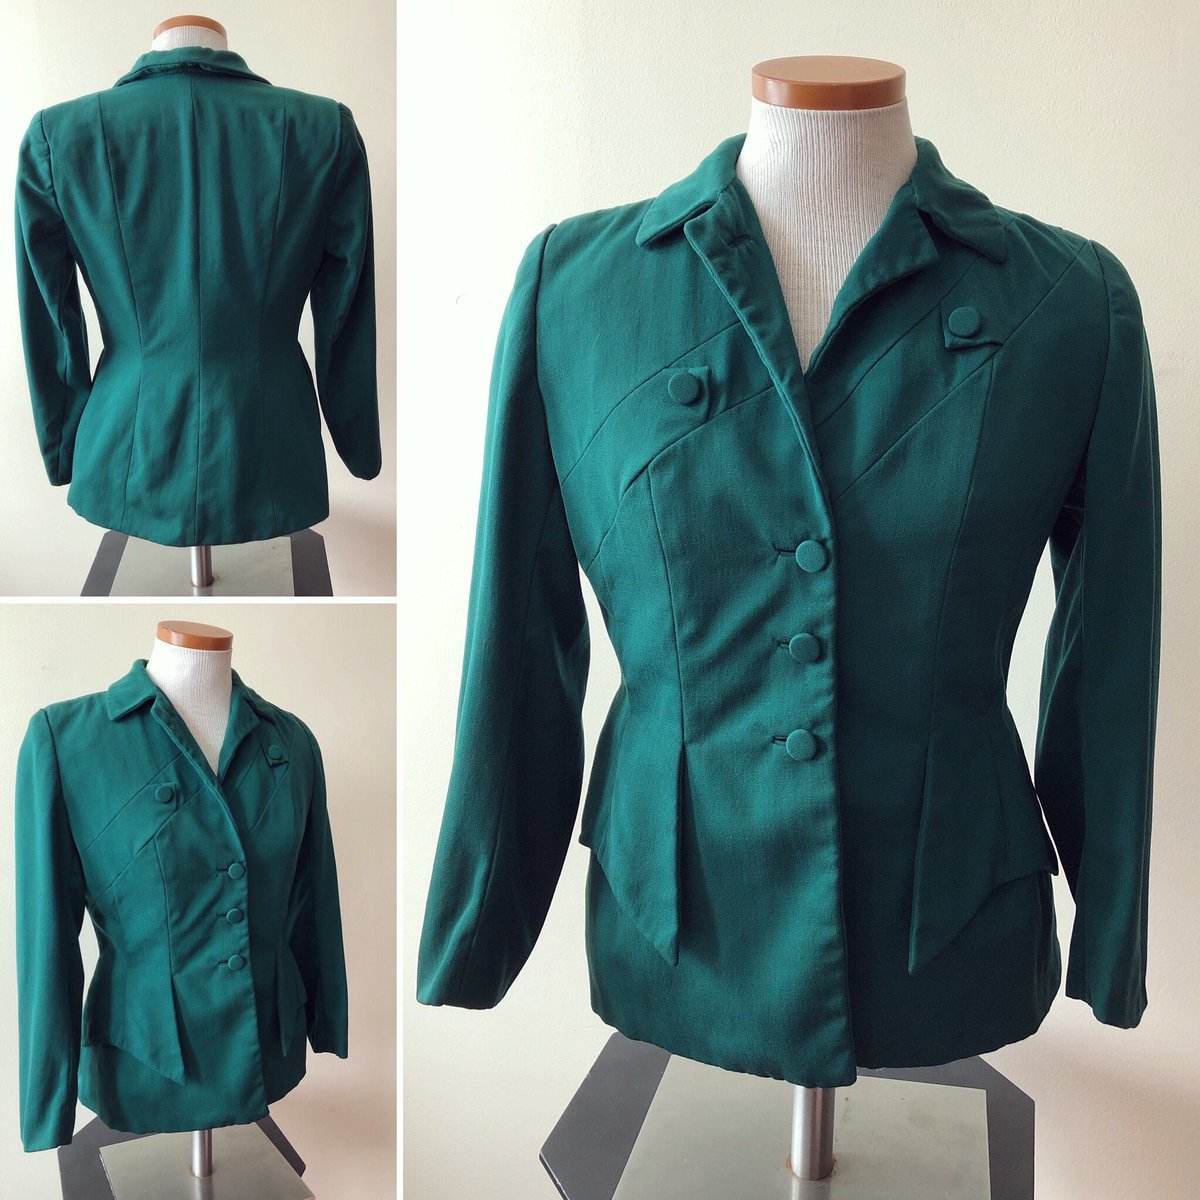 """Emerald green 1940s blazer. Stunning design and faux pockets for the true vintage soul Bust:38"""". Waist: 30"""".  #vintagefashion #vintageblazer #1940sfashion  #1940sblazer #emeraldgreen #classicvintage #vintagesoul #vintageenthusiast #fashionhistorypic.twitter.com/hszJn0hqBo"""